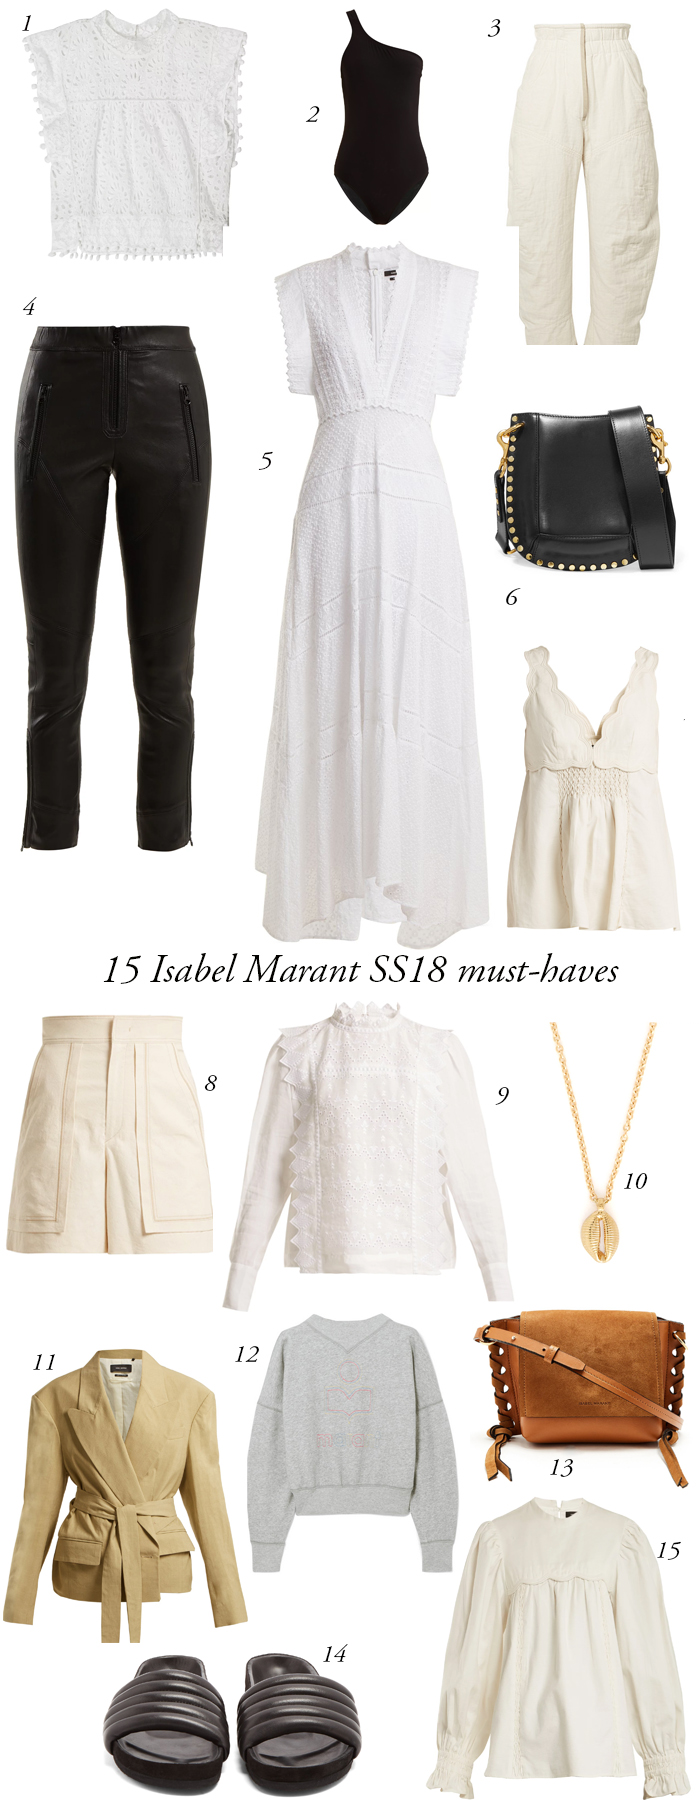 15 Isabel Marant must-haves